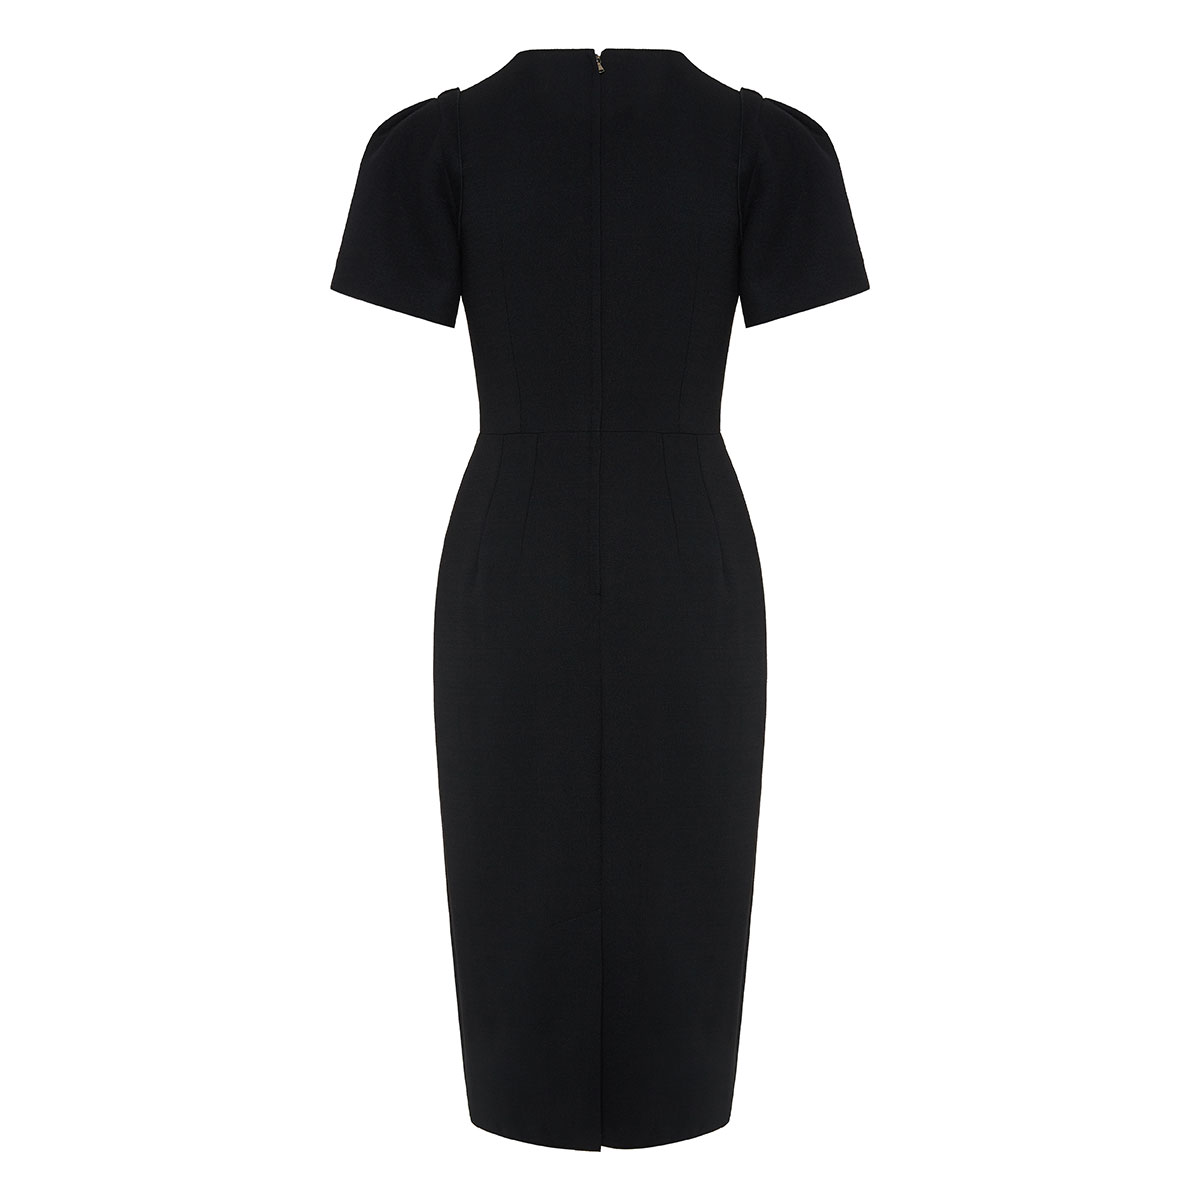 Bow knotted midi dress